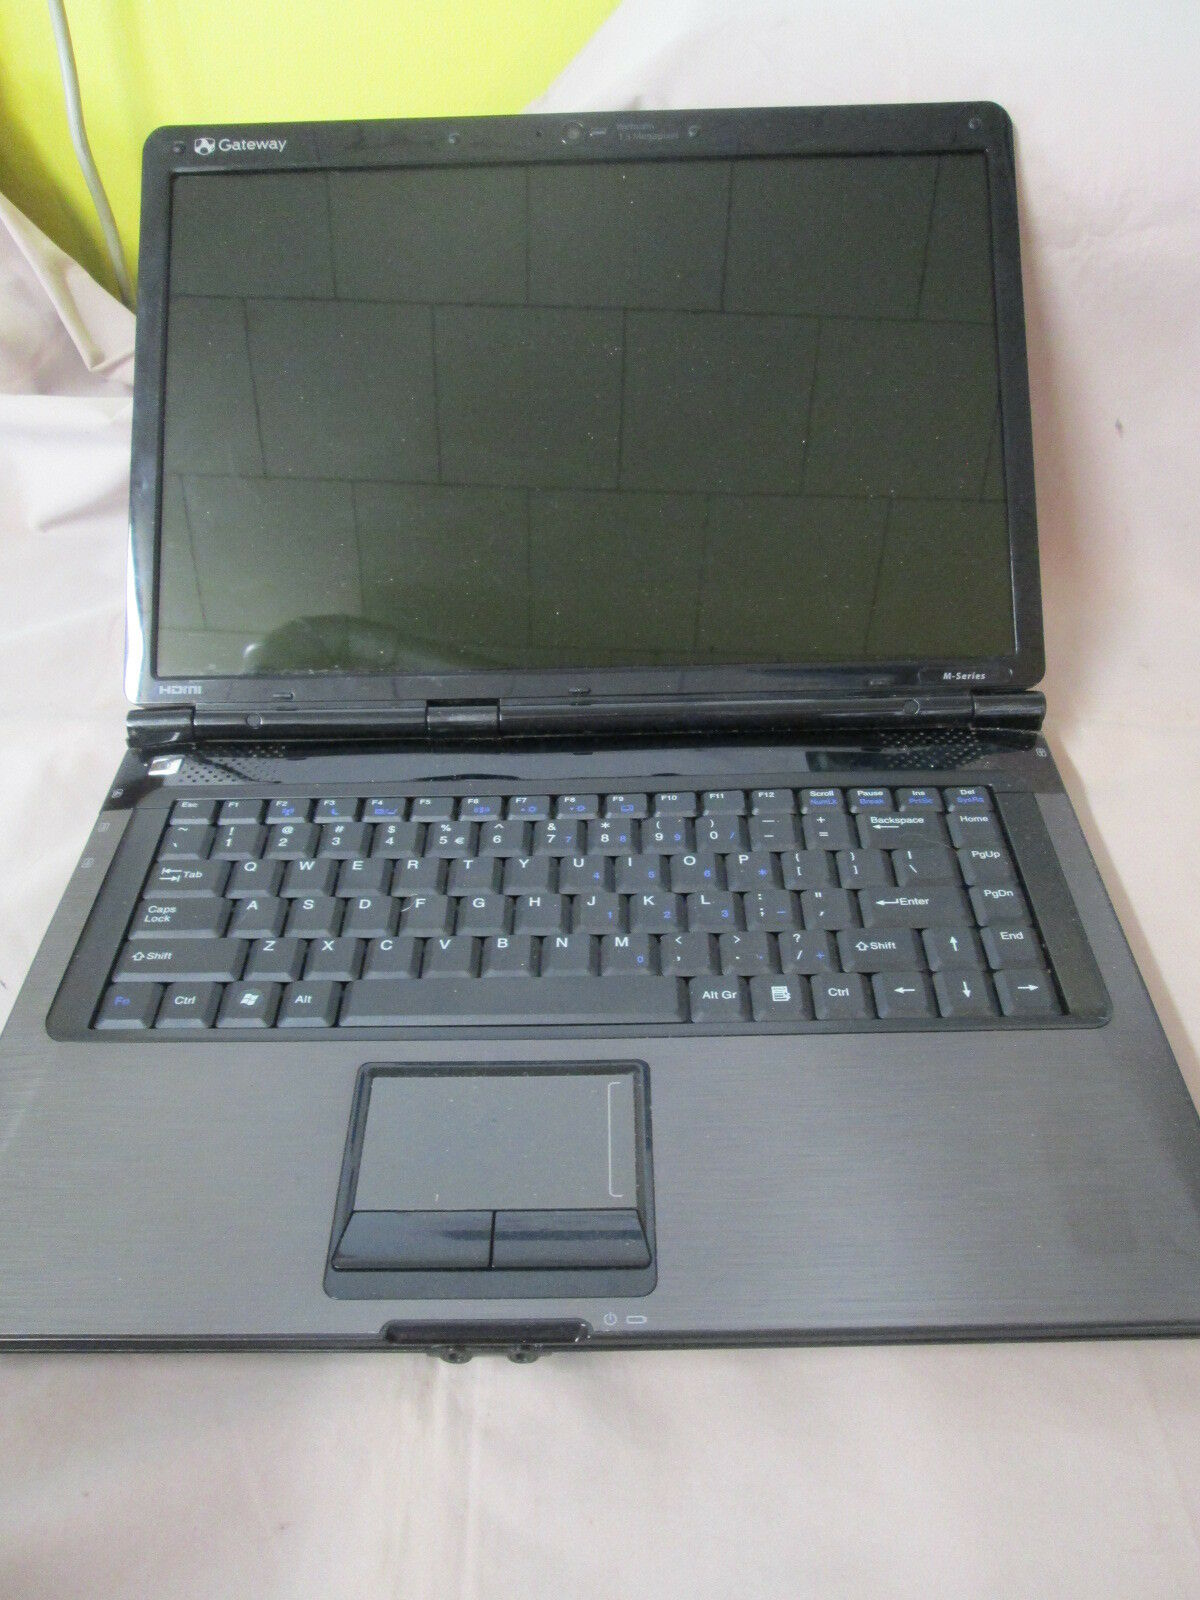 Gateway SA6 M-7301U RED Laptop Smokes When Plugged In. FOR PARTS